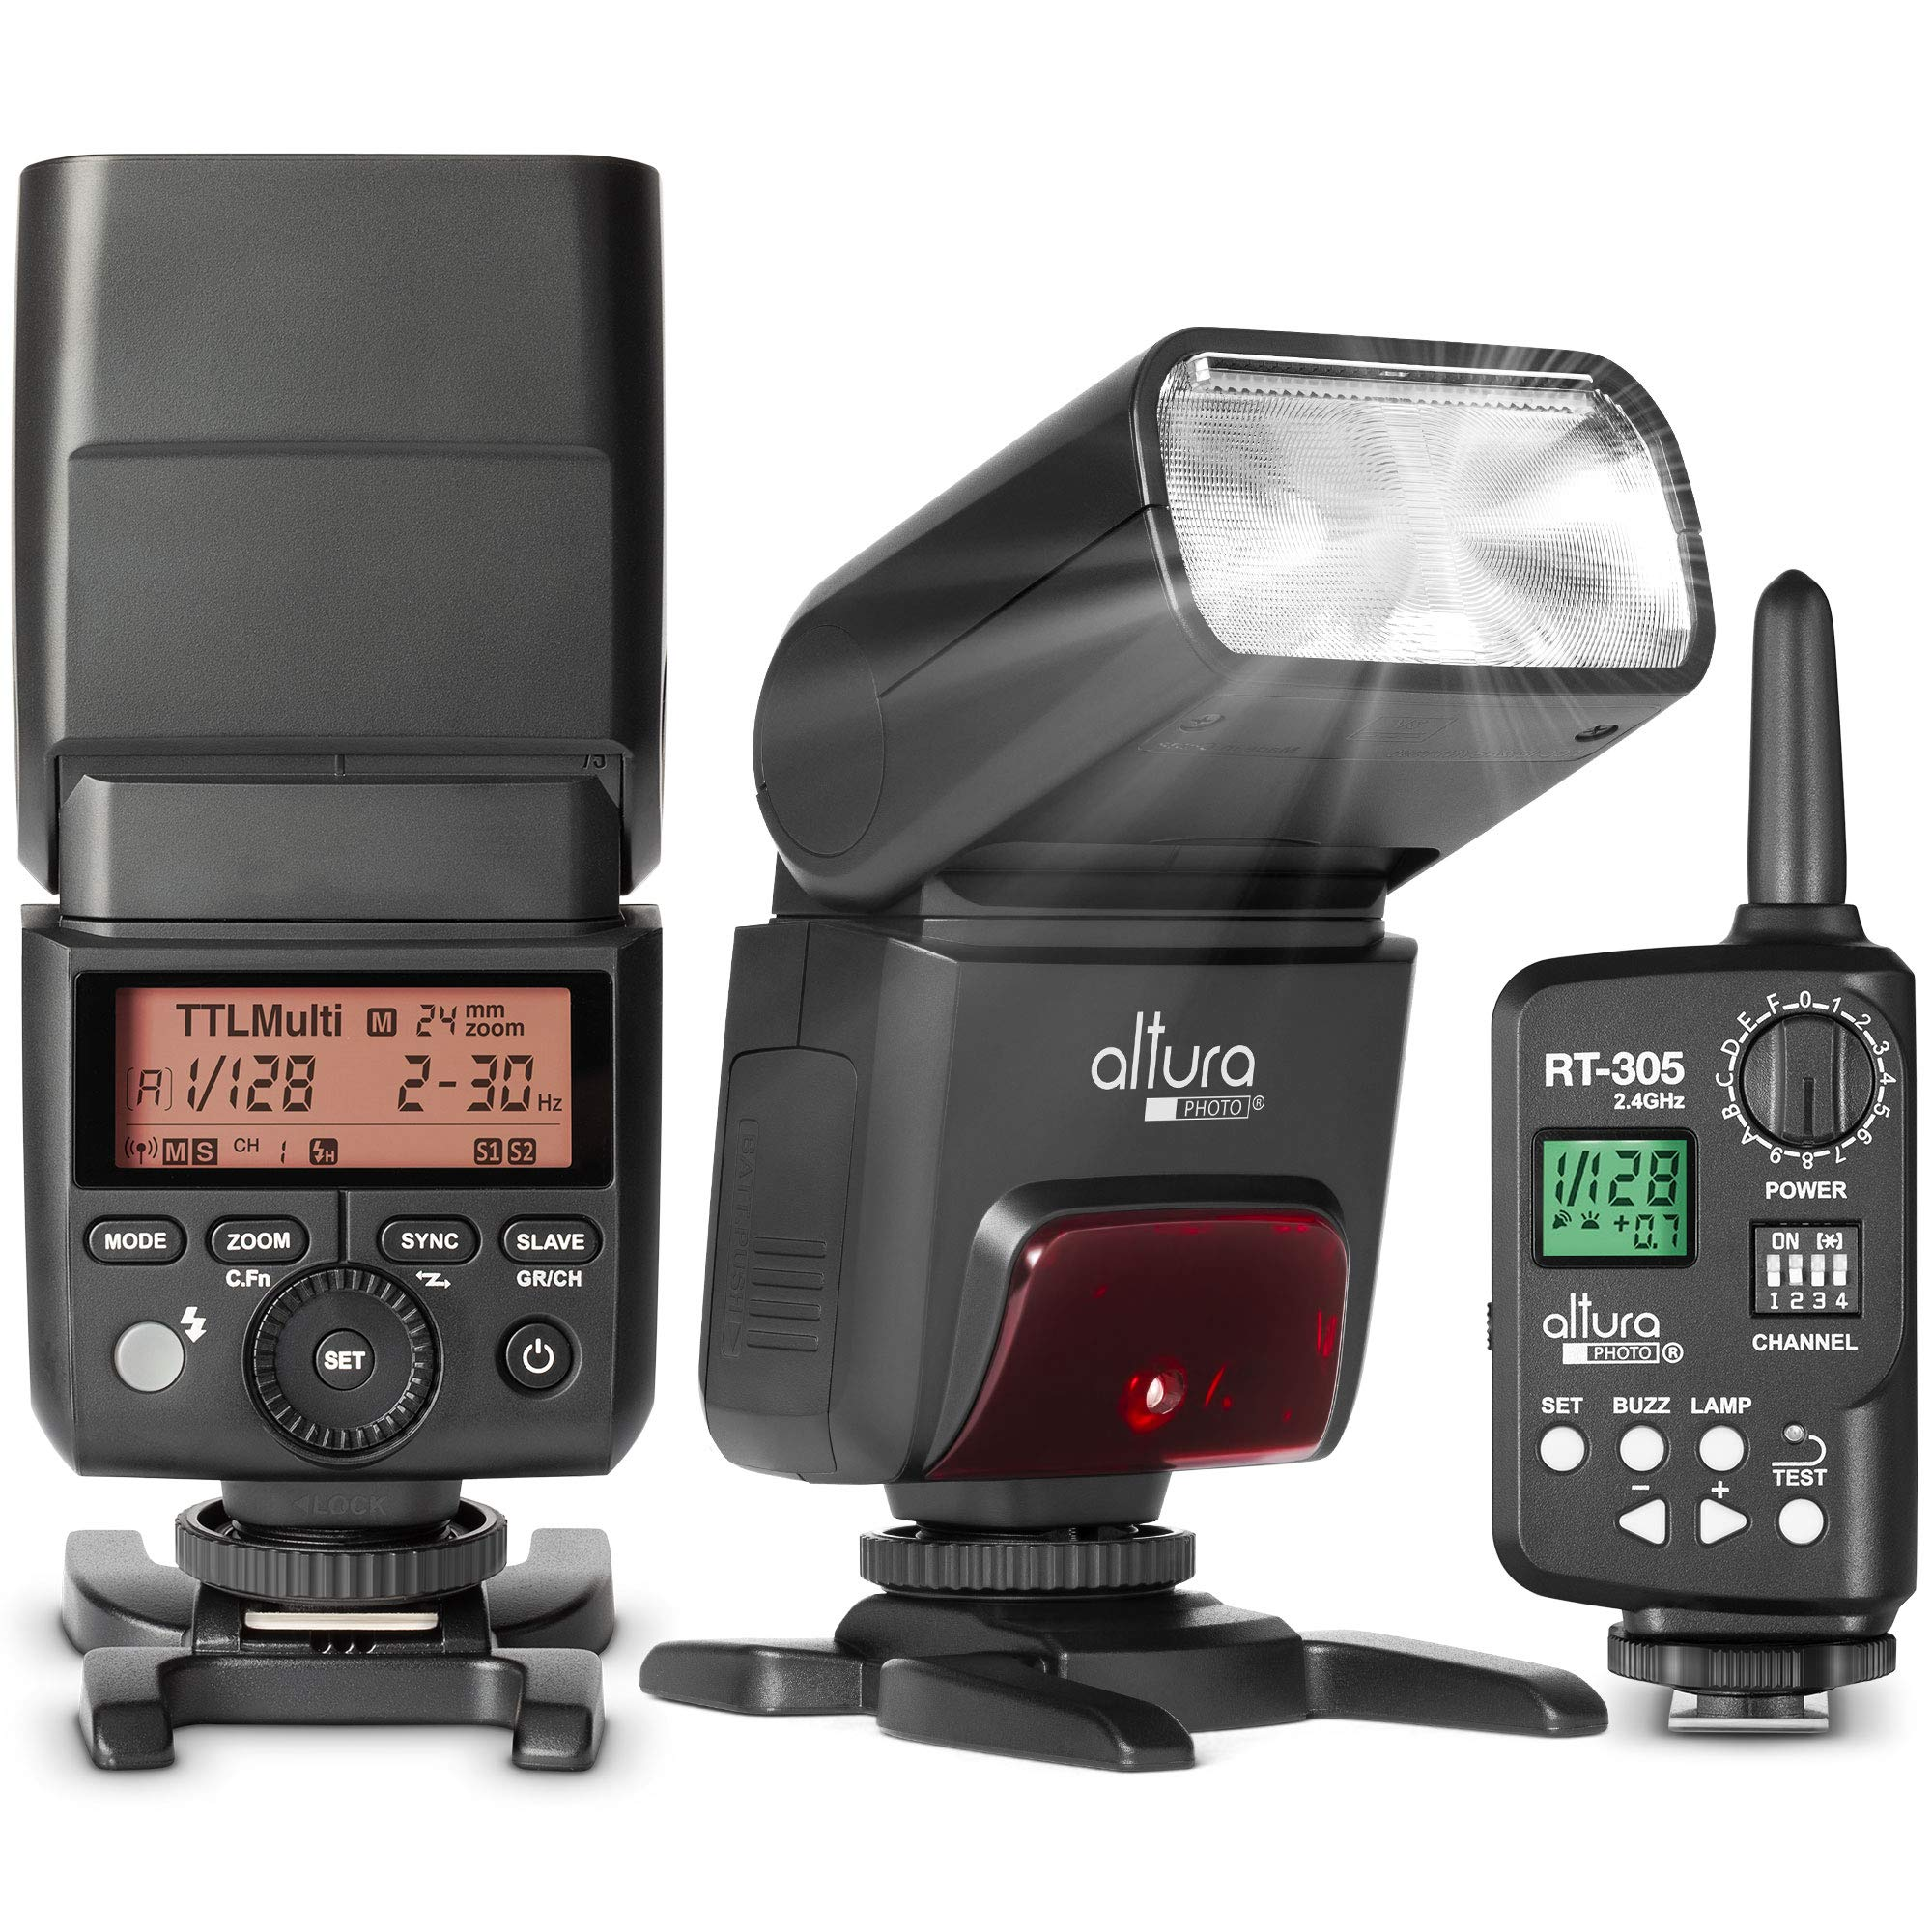 Professional Camera Flash and Wireless Flash Trigger for Sony by Altura Photo - AP-305S & RT-305. 2.4GHz TTL Speedlite for Mirrorless and DSLR by Altura Photo